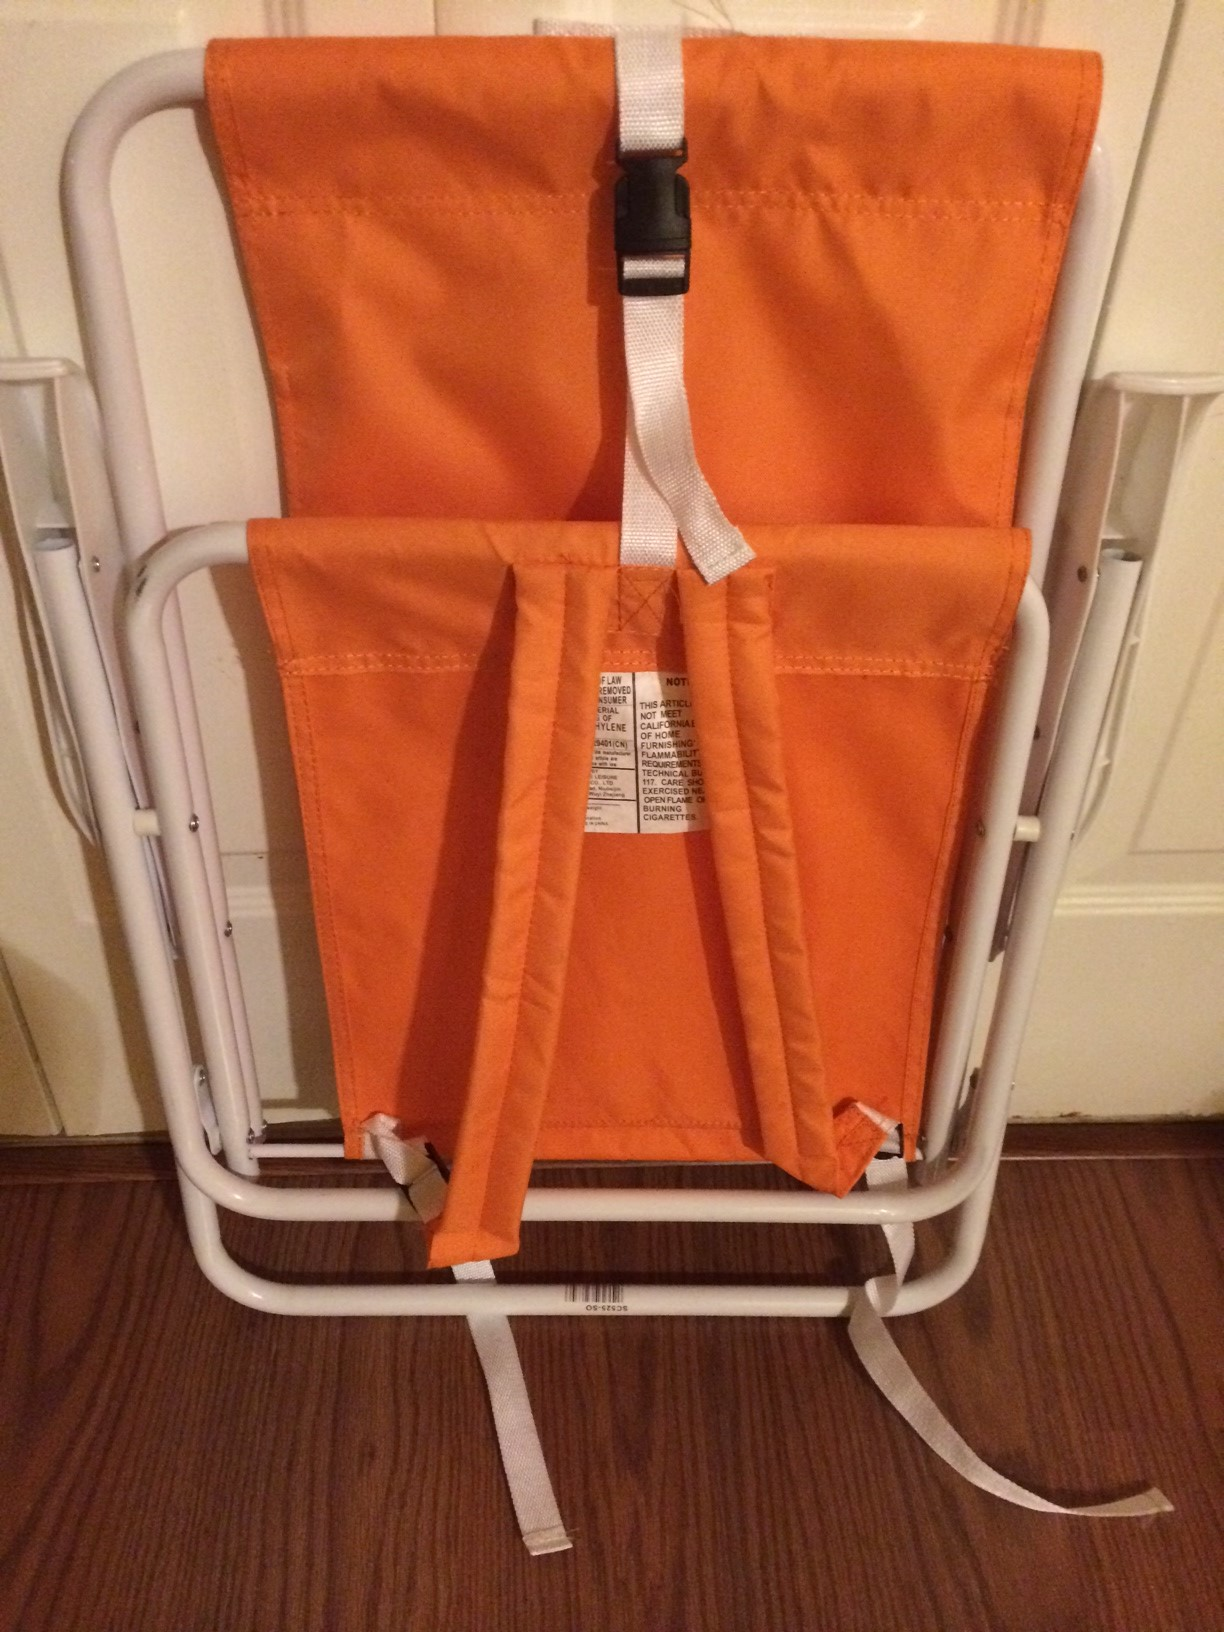 Orange and white beach chair that can be worn like a backpack.